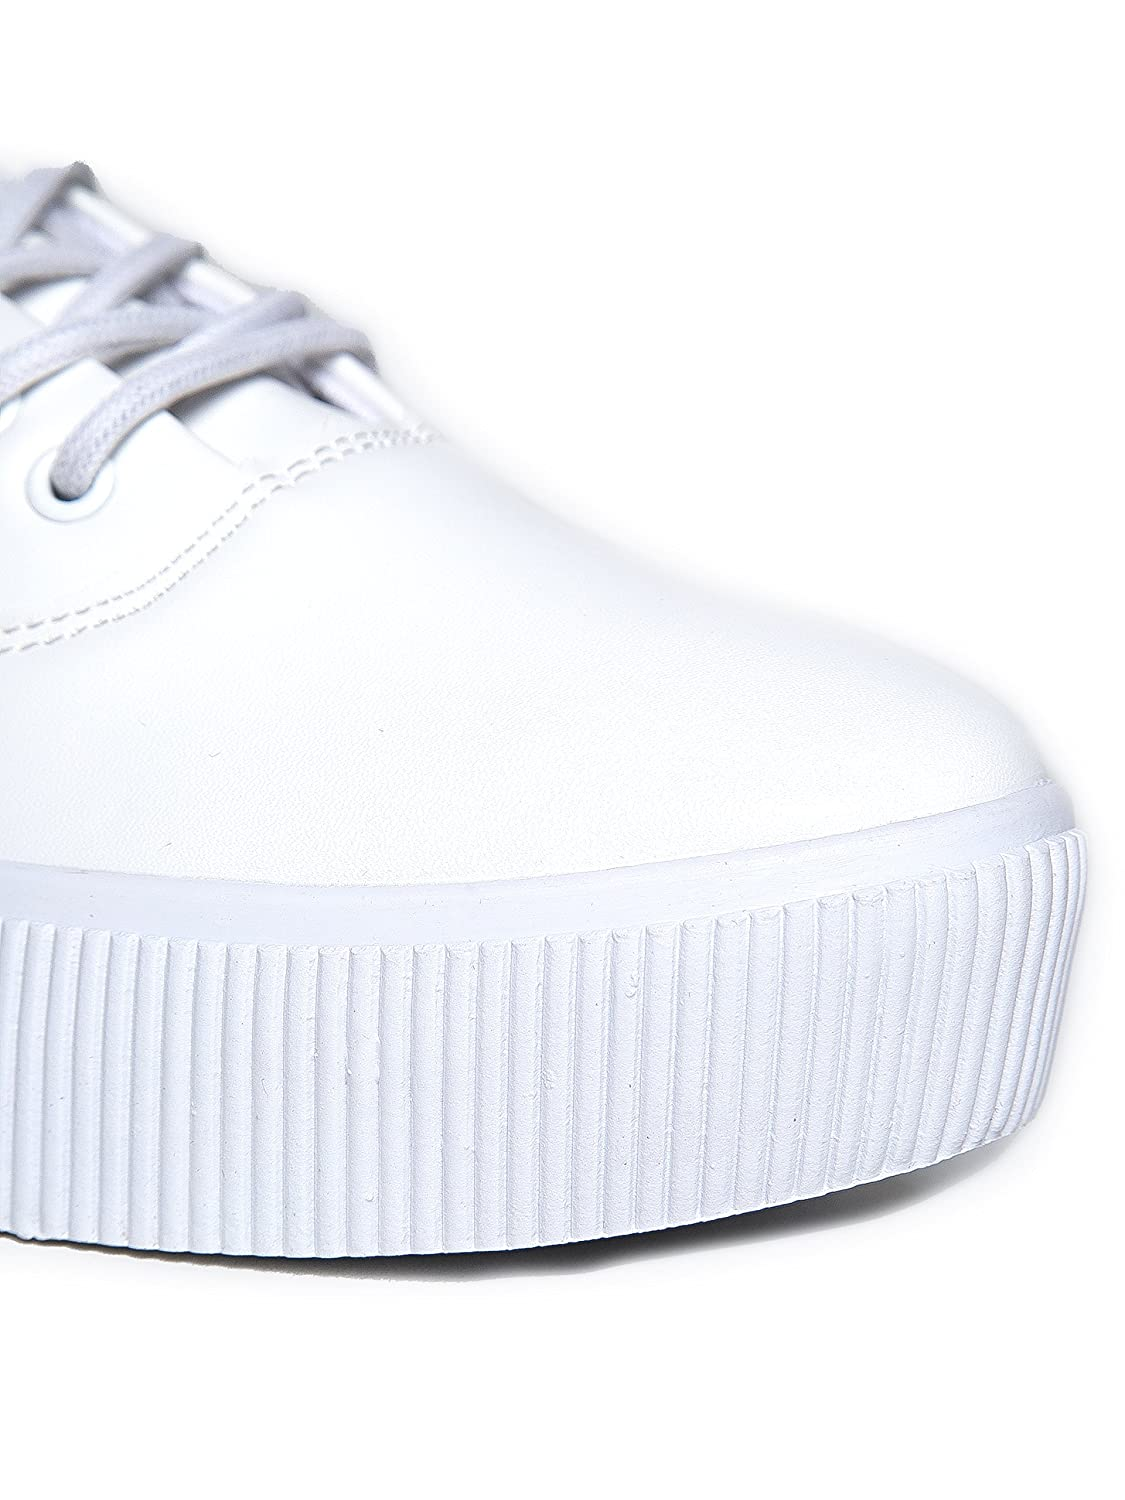 Comfy Cute Casual Walking Shoe Sugar White Cute To The Core Womens Lace Up Vegan Leather Sneaker